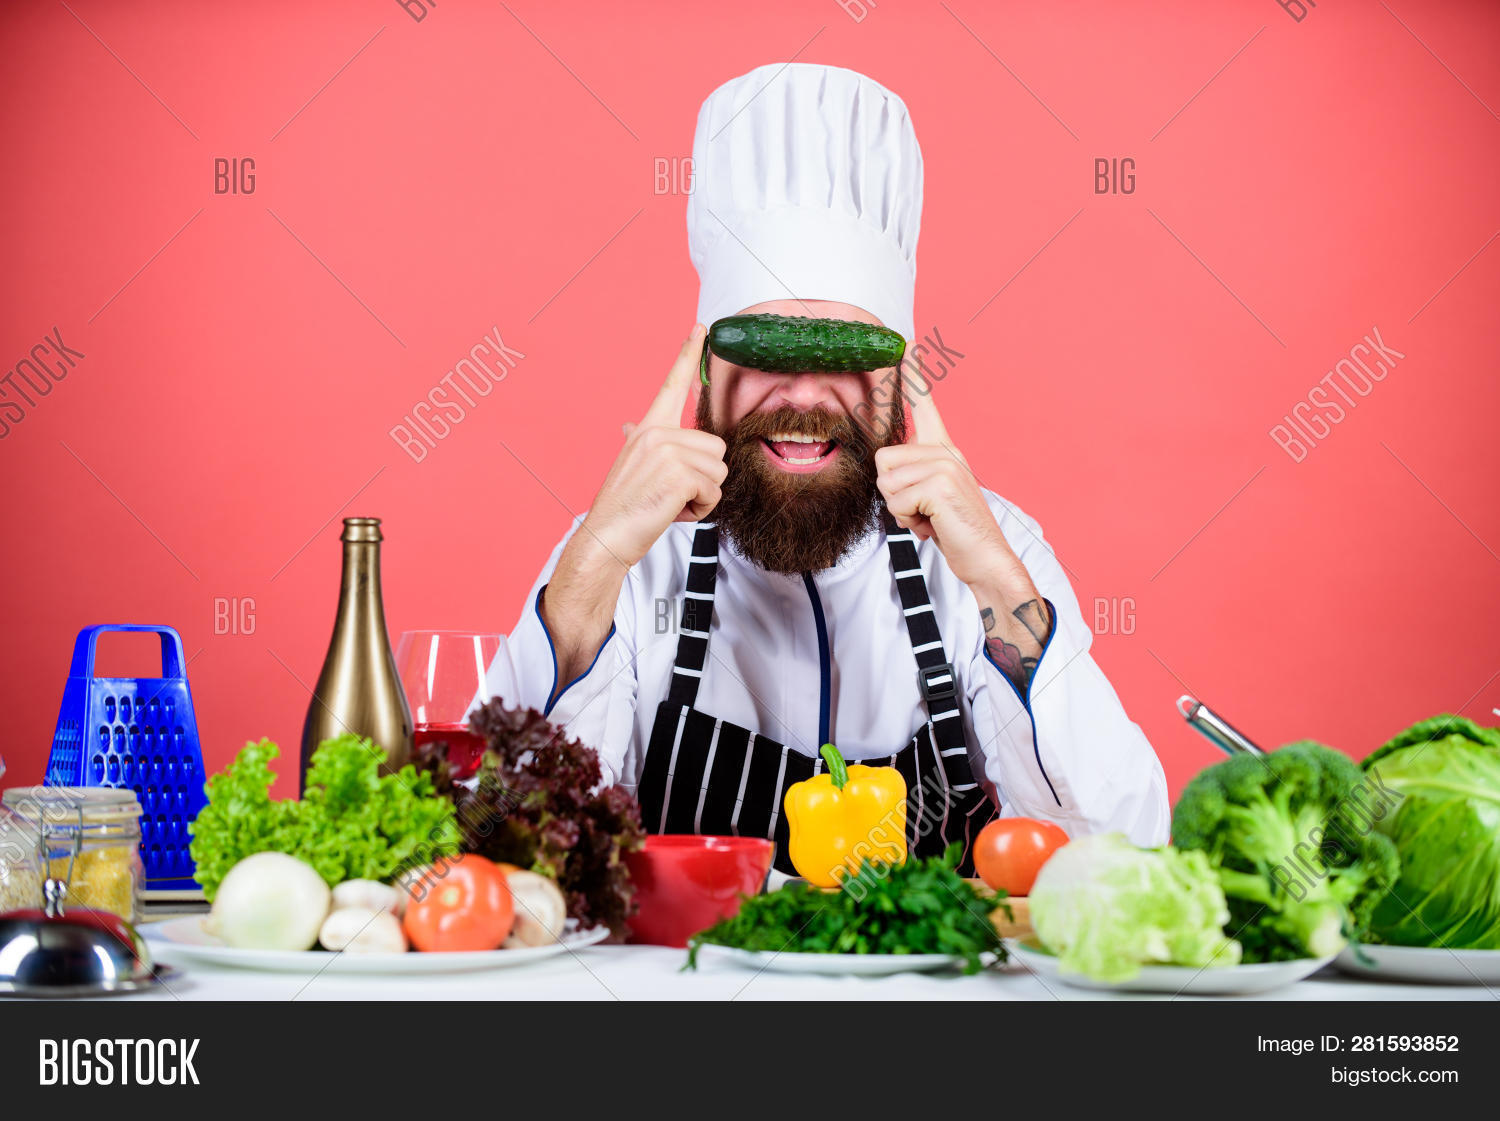 apron,background,buy,cafe,caucasian,chef,chief,choose,concept,cook,cooking,cucumber,cuisine,culinary,diet,dieting,eat,food,fresh,fun,gourmet,greenery,grocery,hat,health,healthy,hipster,hold,homegrown,lifestyle,man,nutrition,organic,professional,ration,recipe,red,restaurant,store,uniform,vegan,vegetable,vegetarian,vitamin